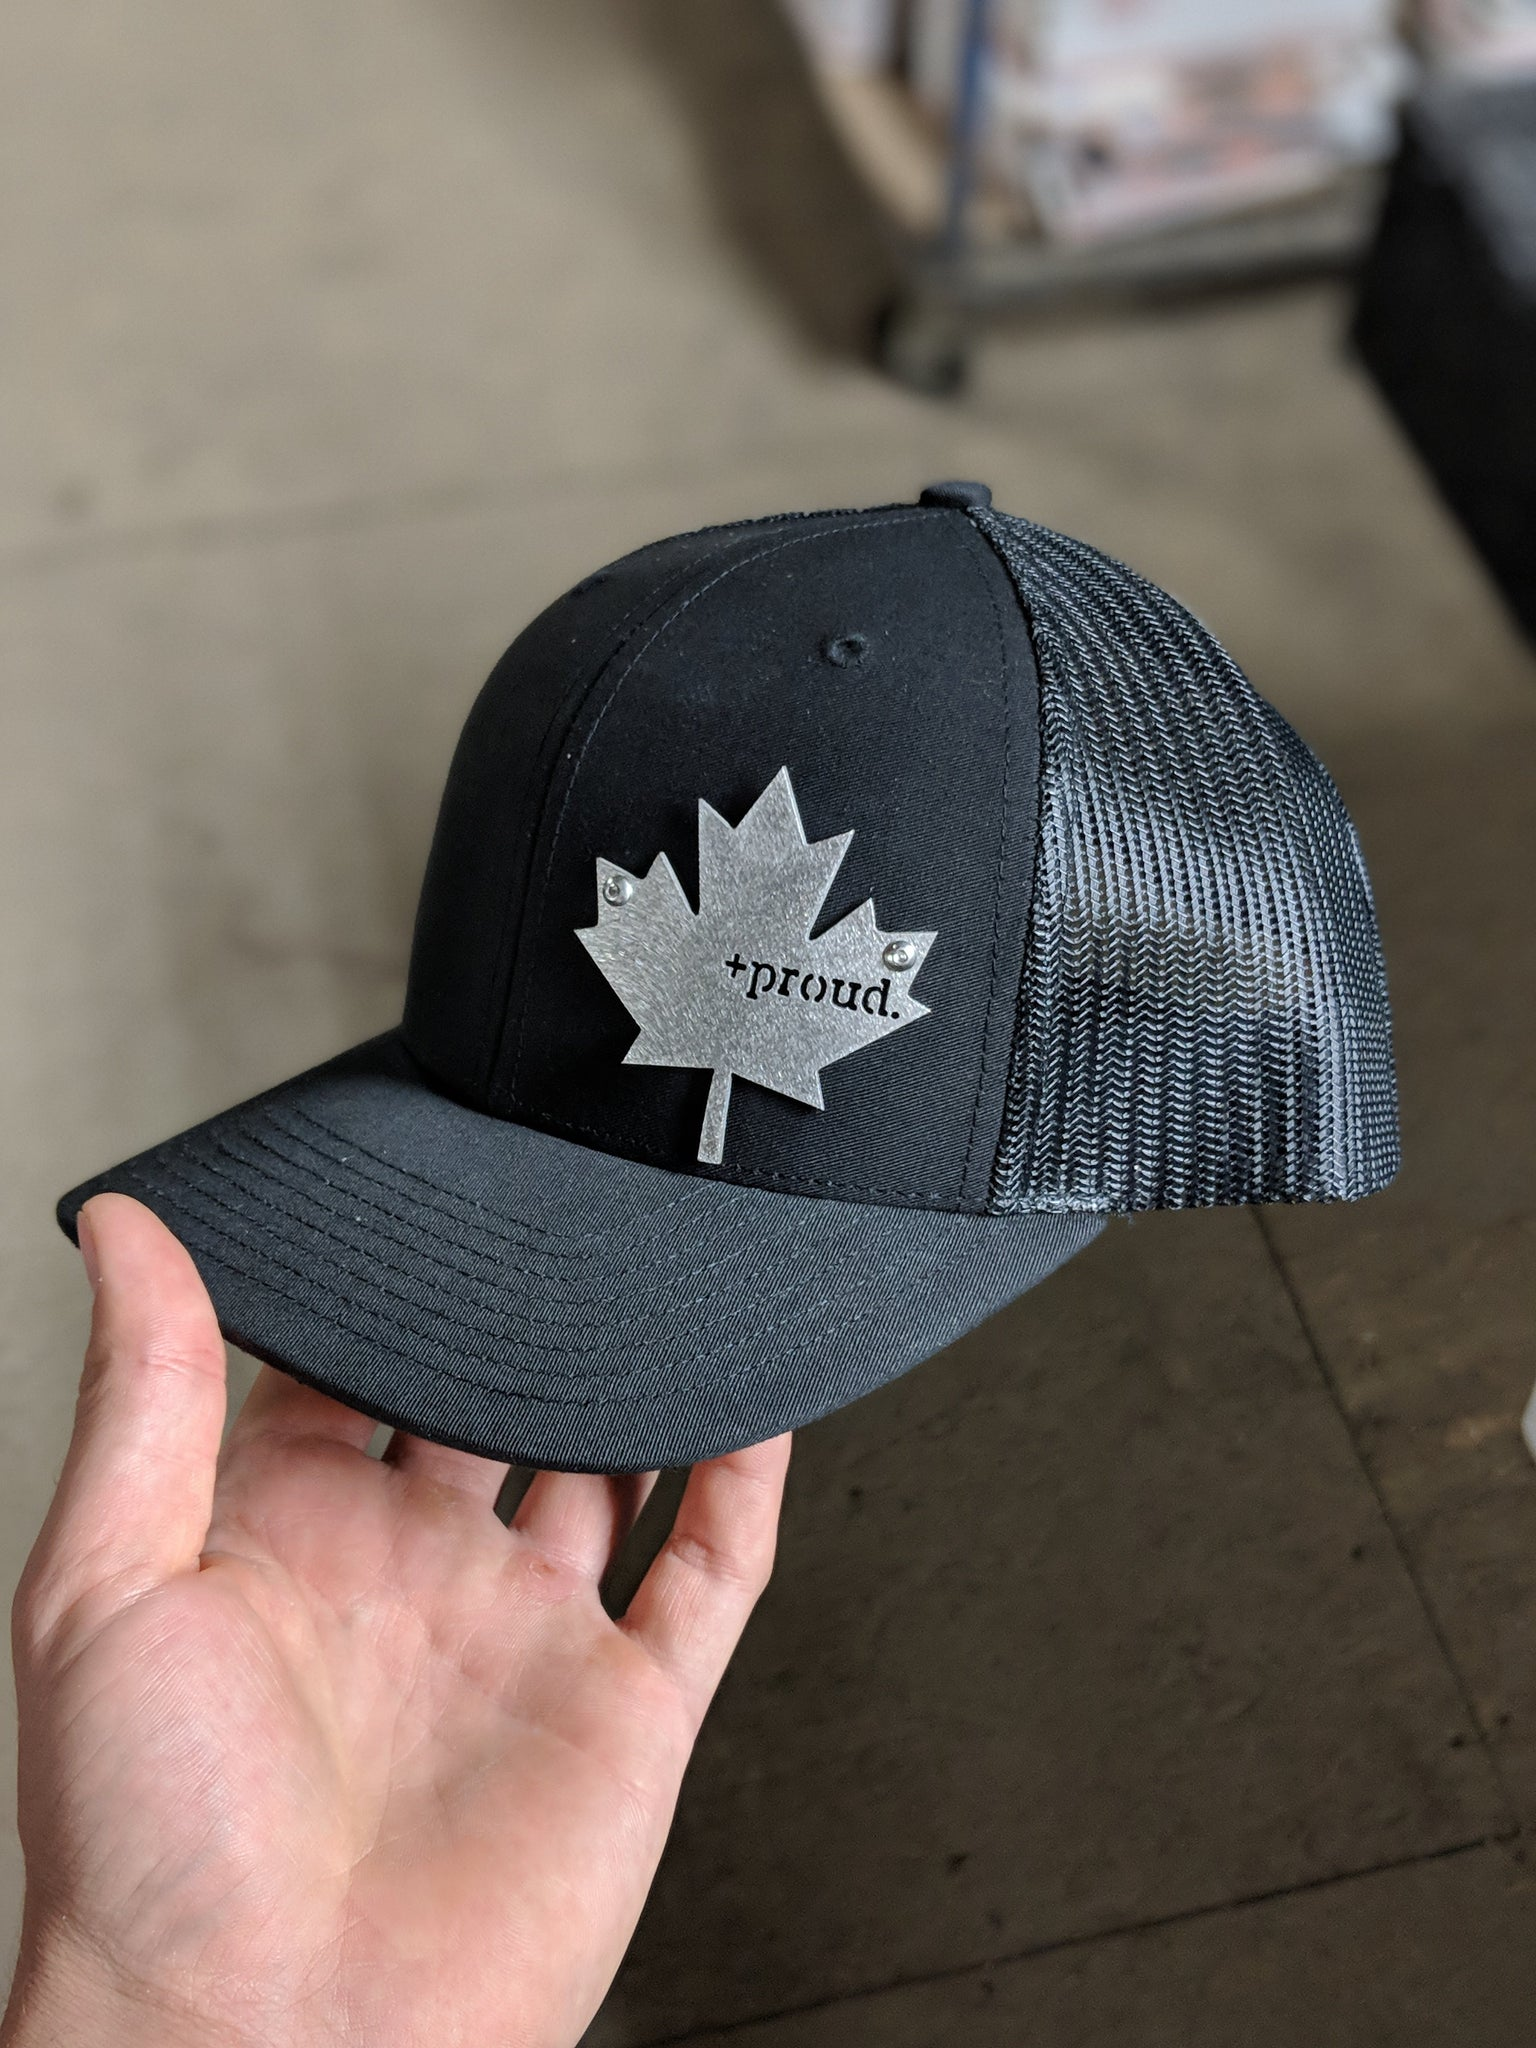 Canadian + Proud Stainless Steel HeadGear Hat